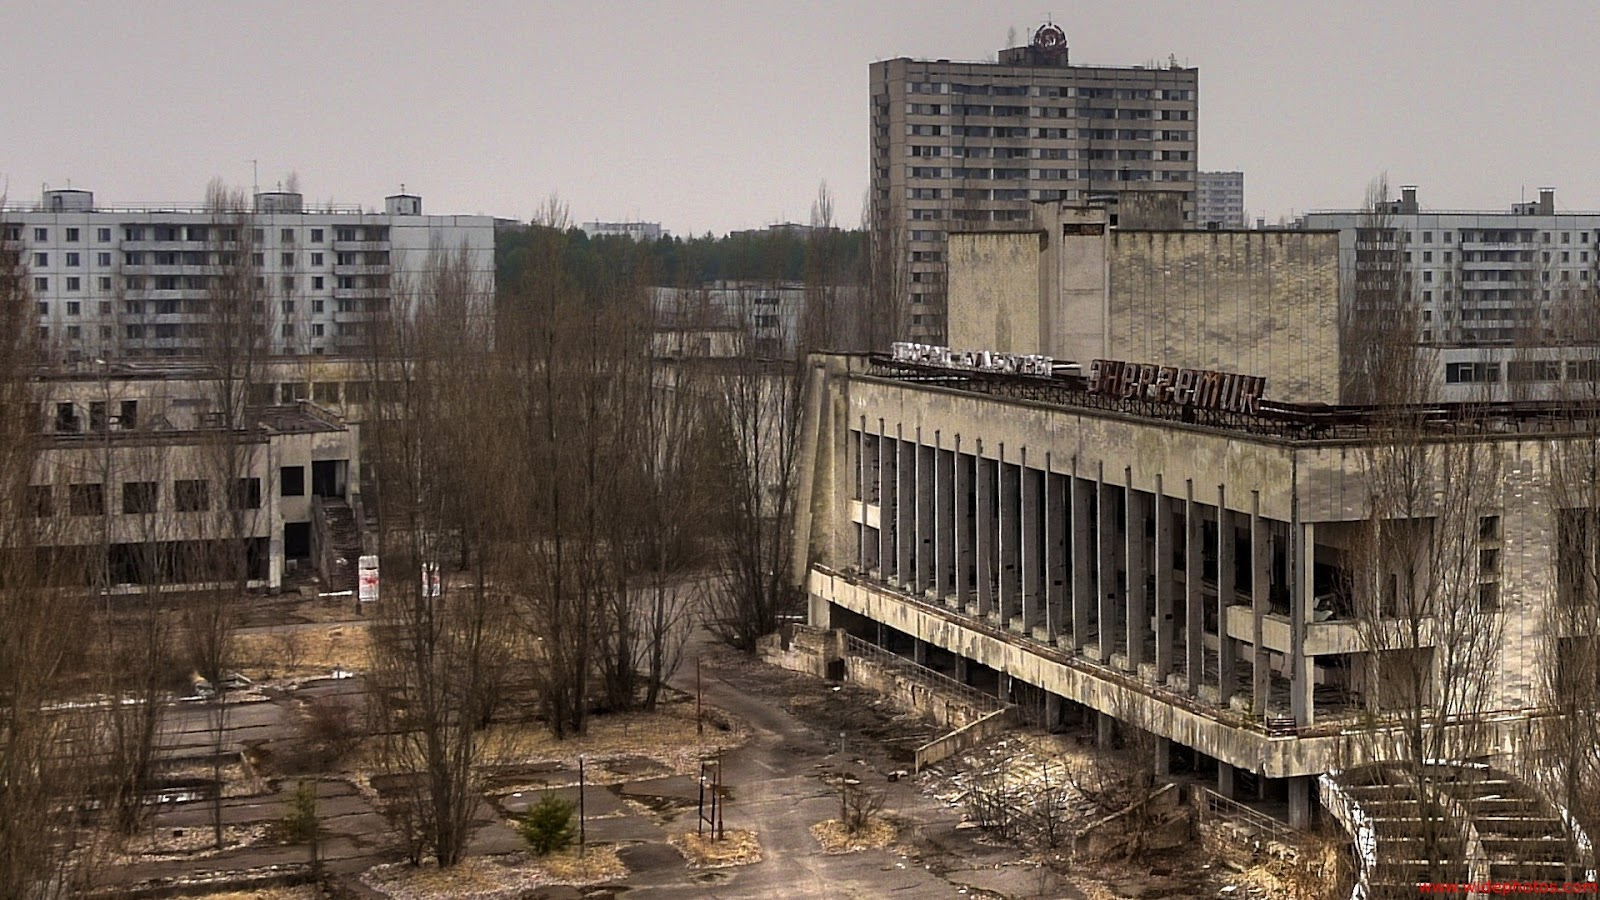 WayanG SupeRNouvO: Chernobyl; City of Death